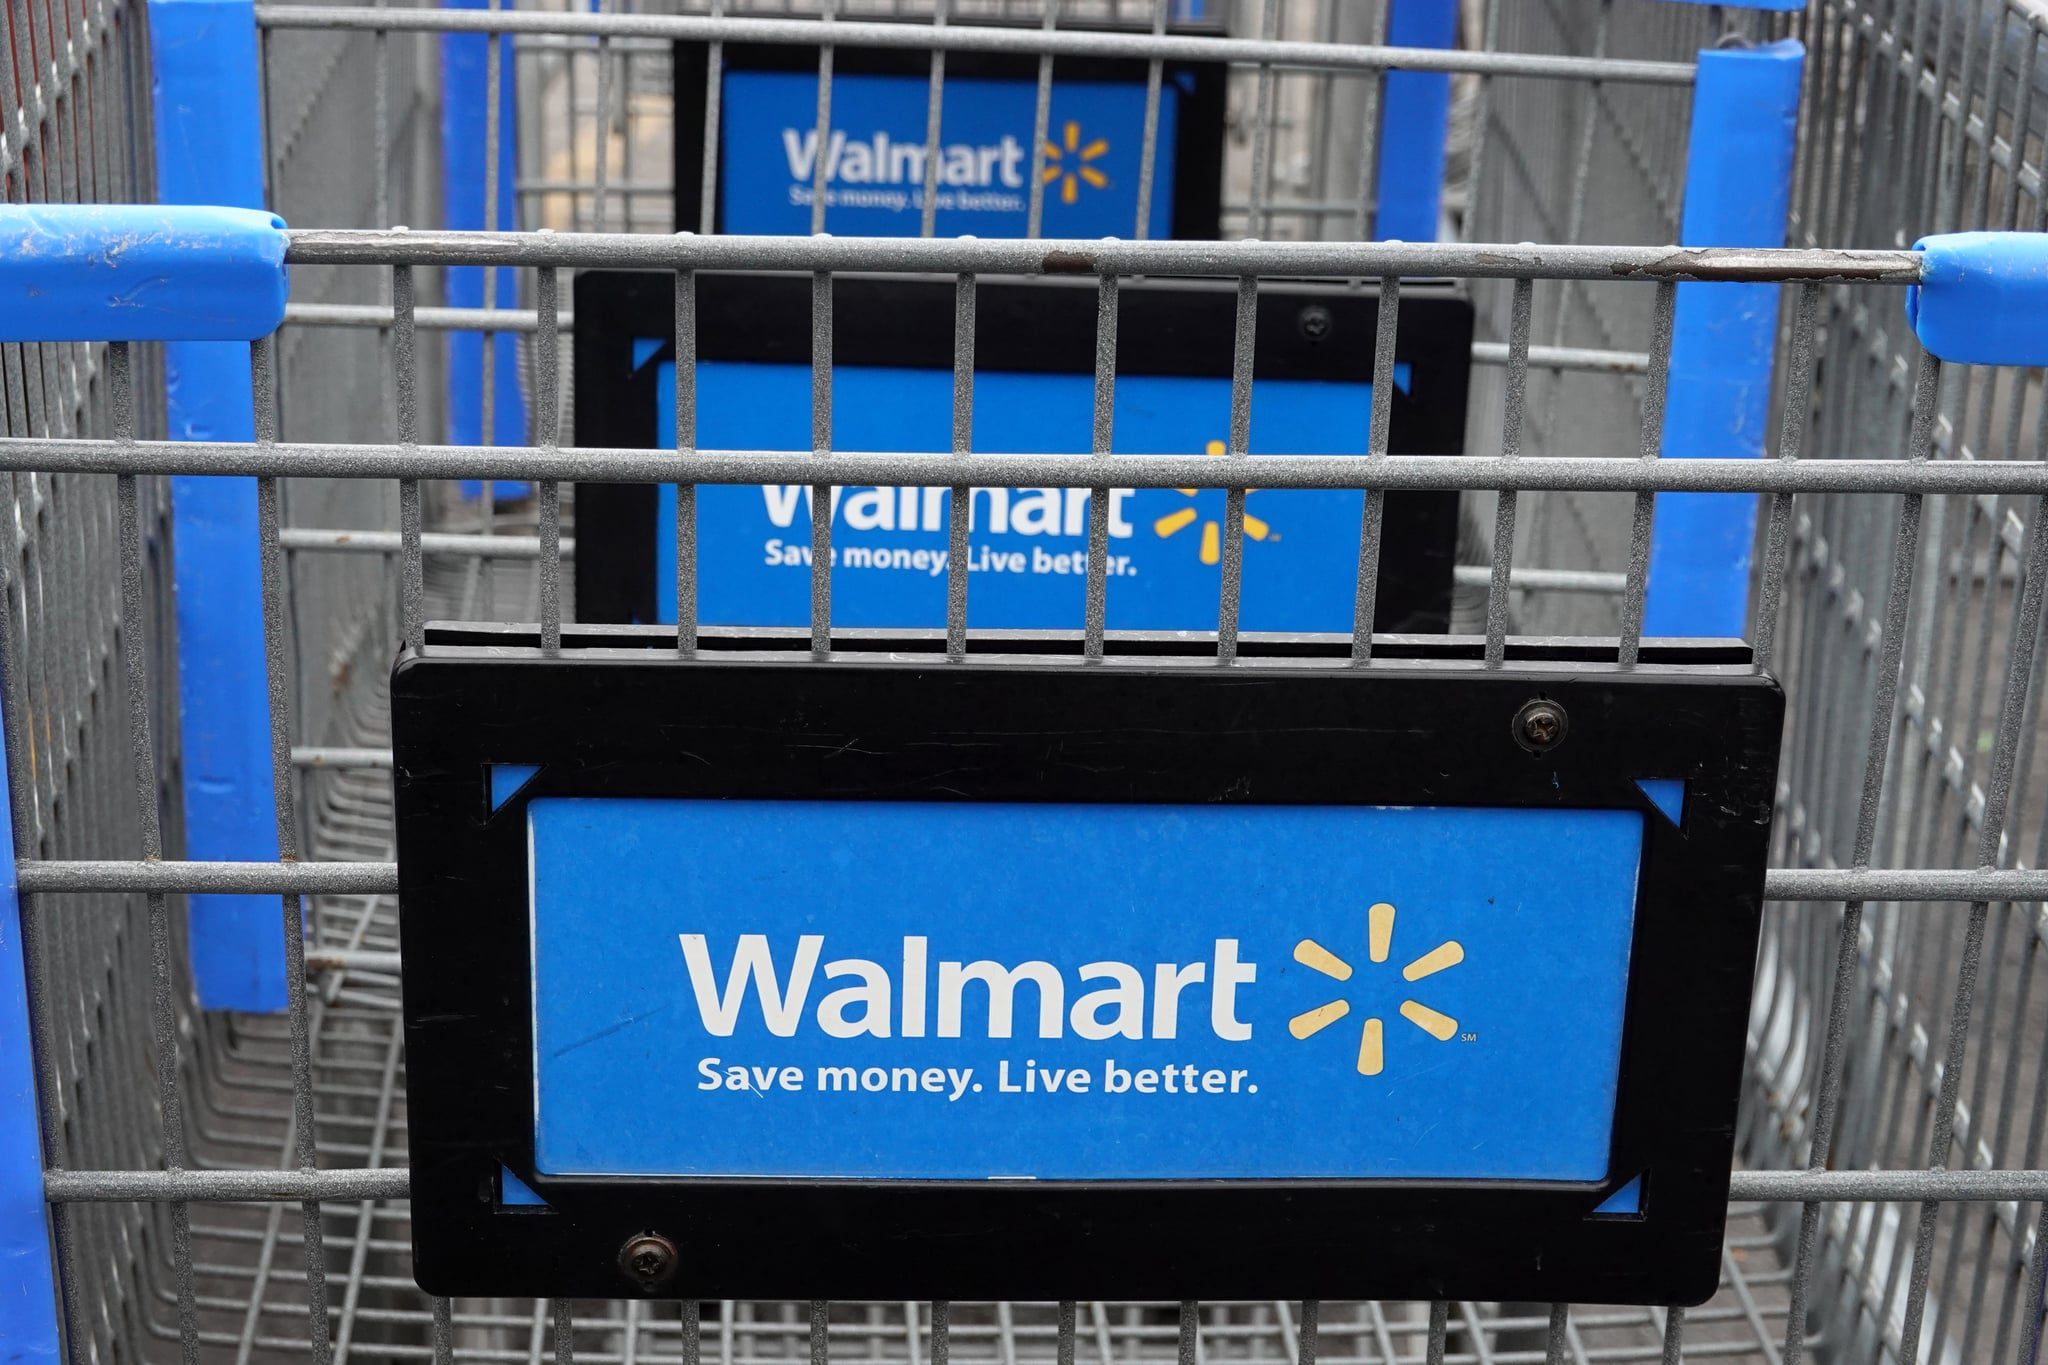 CHICAGO, ILLINOIS - MAY 19: Shopping carts sit in the parking lot of a Walmart store on May 19, 2020 in Chicago, Illinois. Walmart reported a 74% increase in U.S. online sales for the quarter that ended April 30, and a 10% increase in same store sales for the same period as the effects of the coronavirus helped to boost sales. (Photo by Scott Olson/Getty Images)